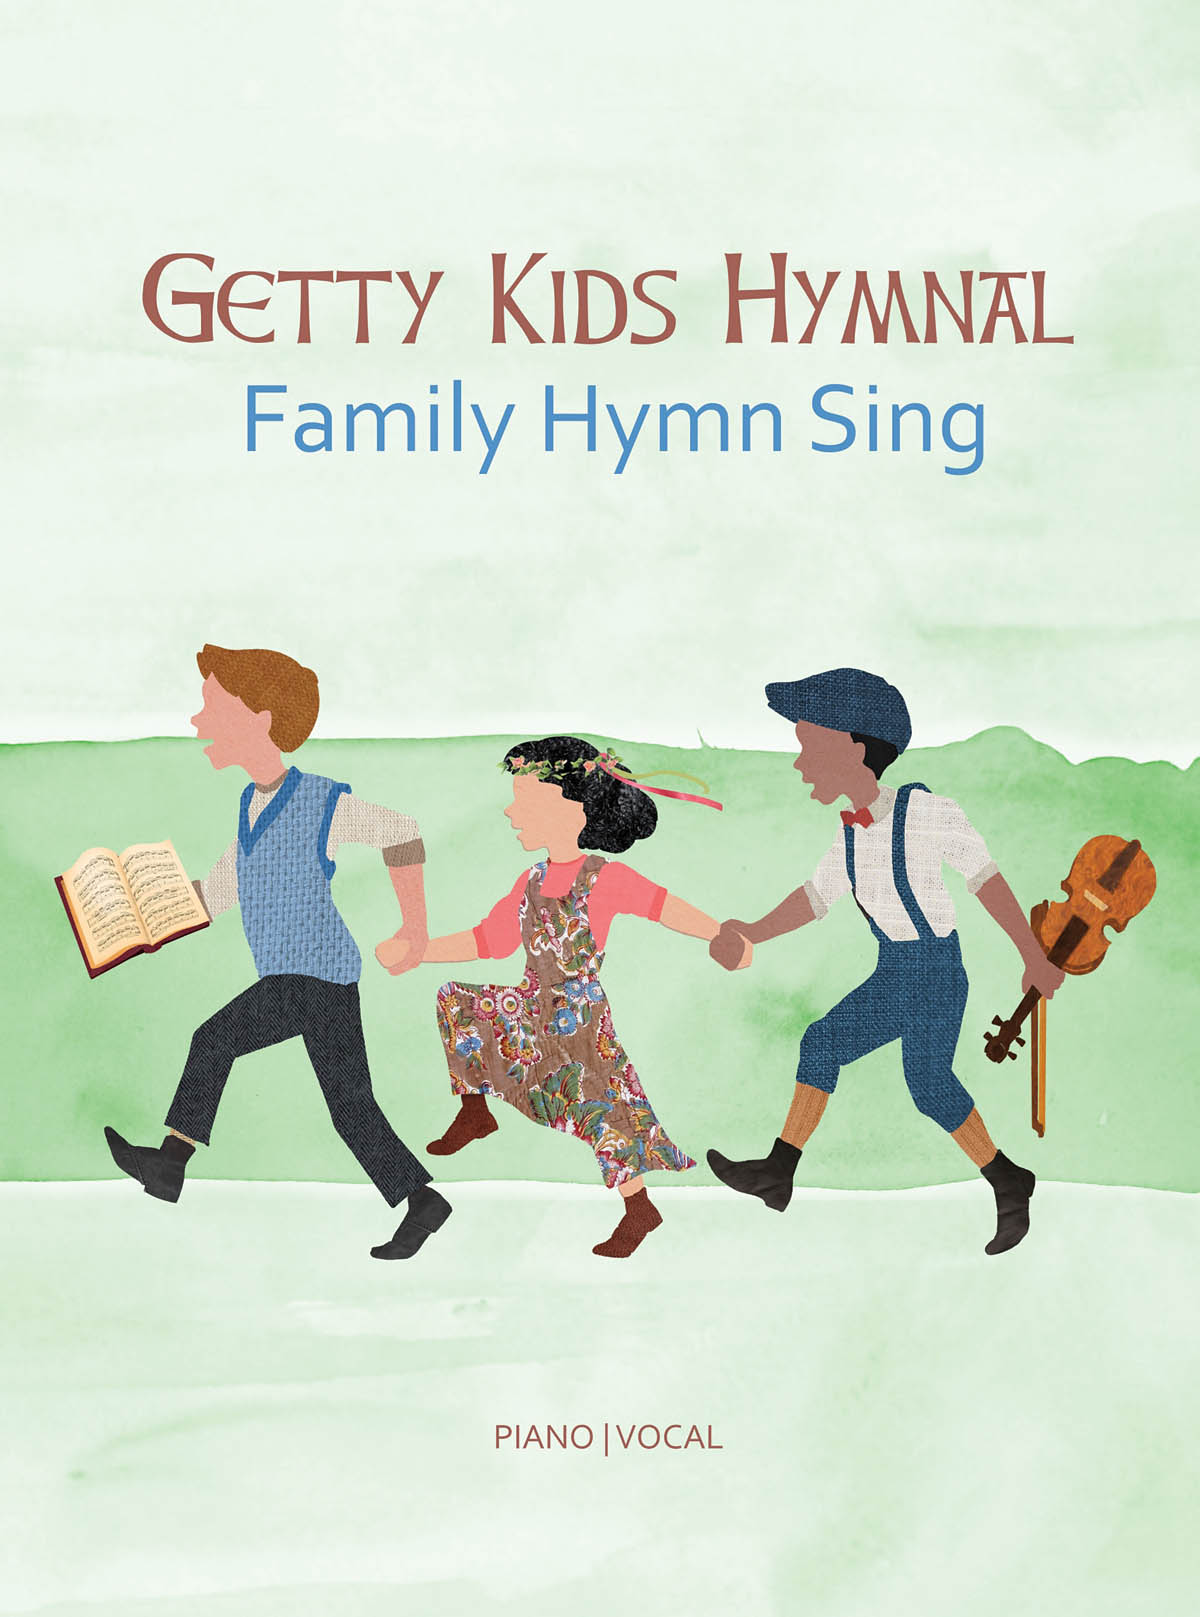 Keith Getty Kristyn Getty: Getty Kids Hymnal - Family Hymn Sing: Vocal and